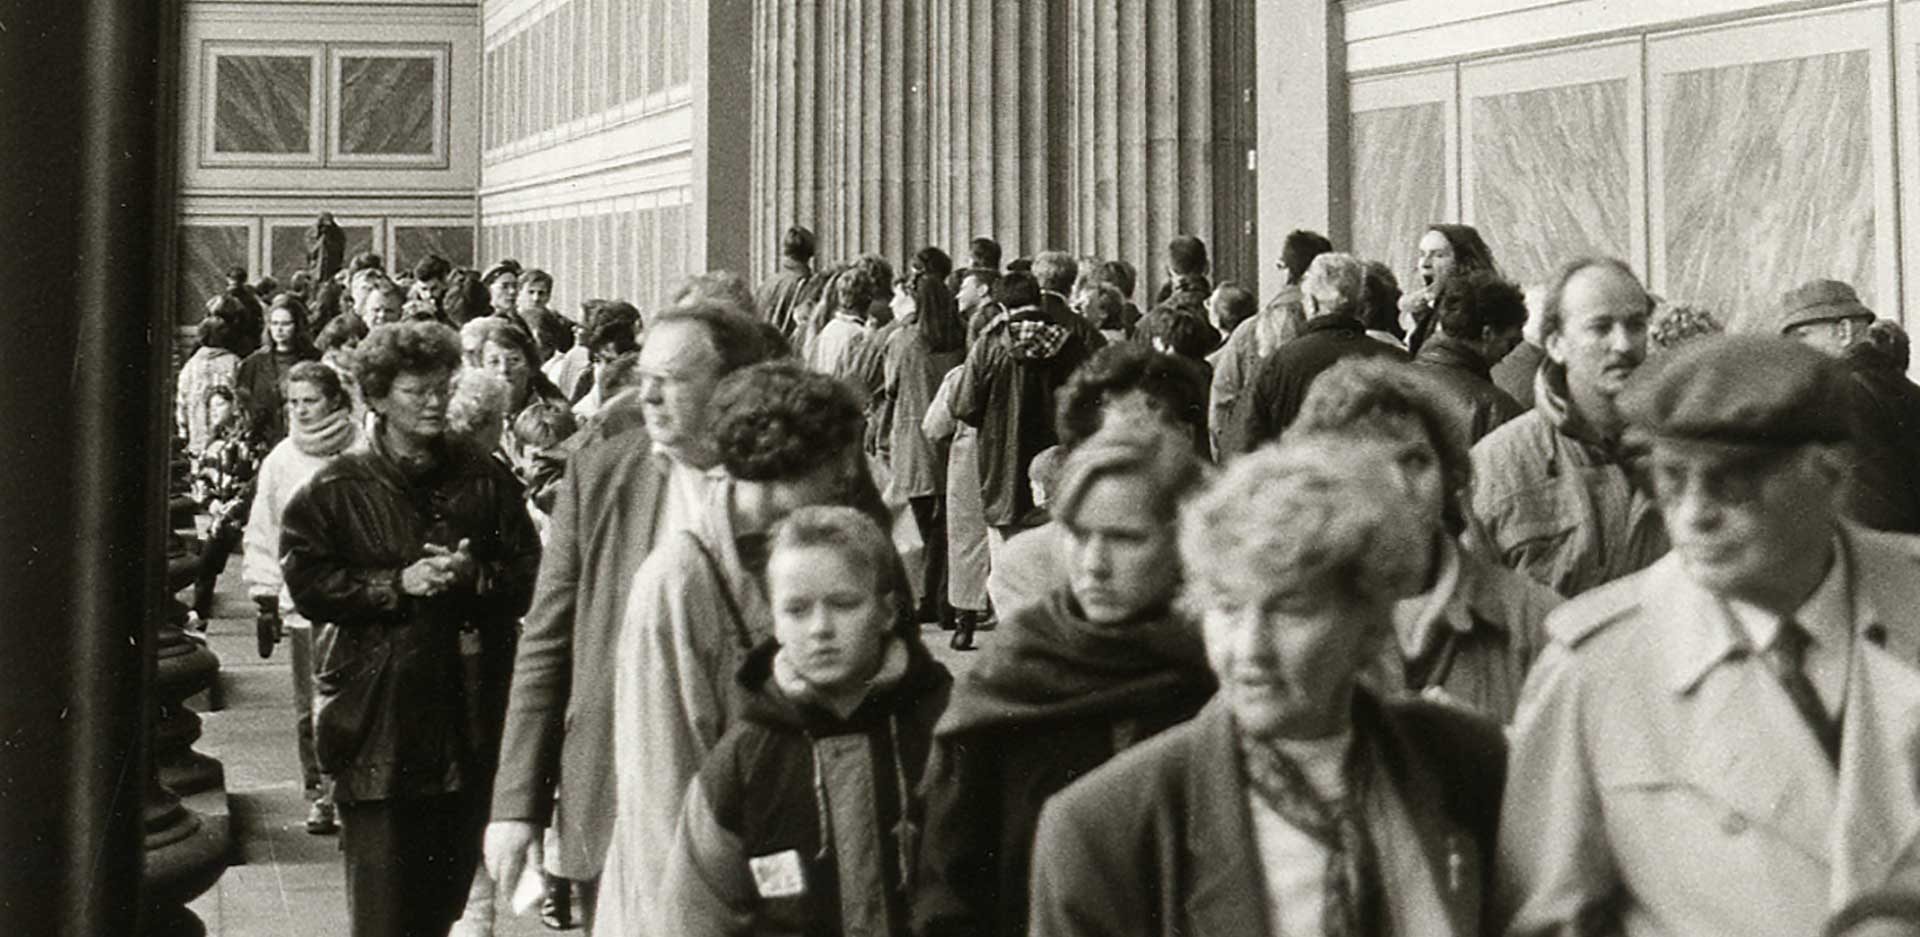 Visitors of the Rembrandt exhibition with paintings from the Gemäldegalerie (East) and the Gemäldegalerie (West) in the Altes Museum, 1991